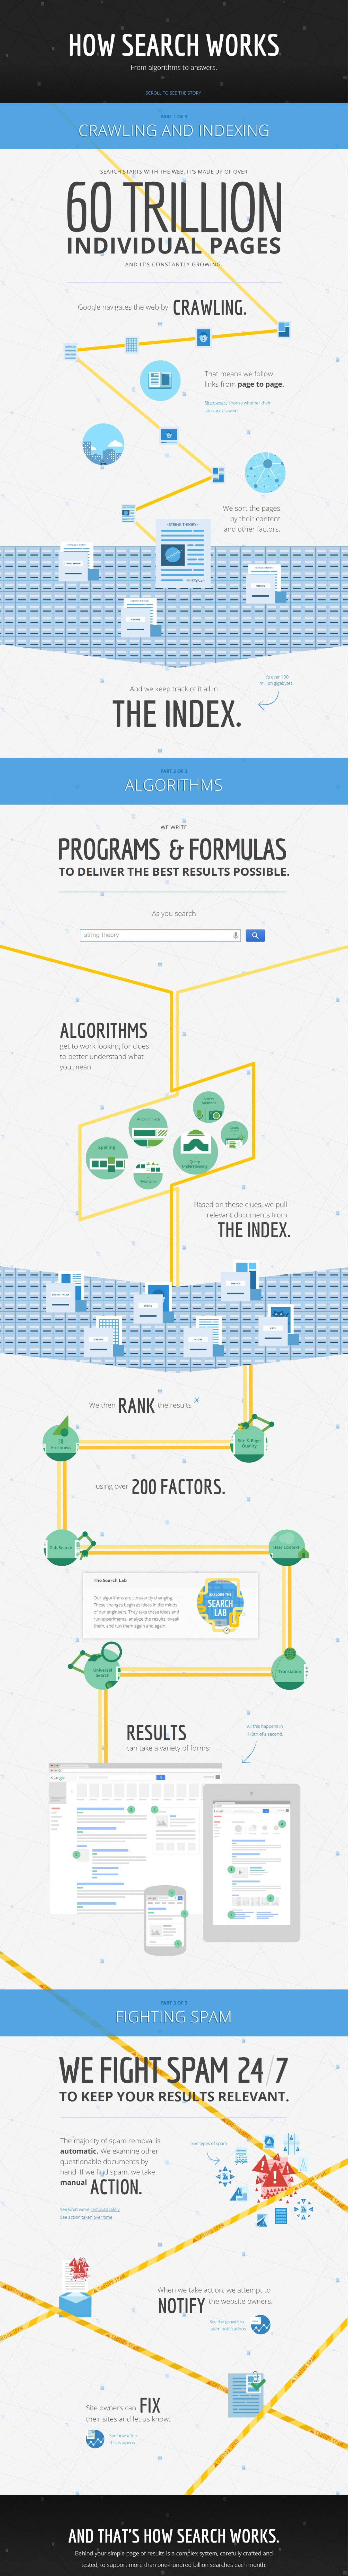 How Search Works Infographic